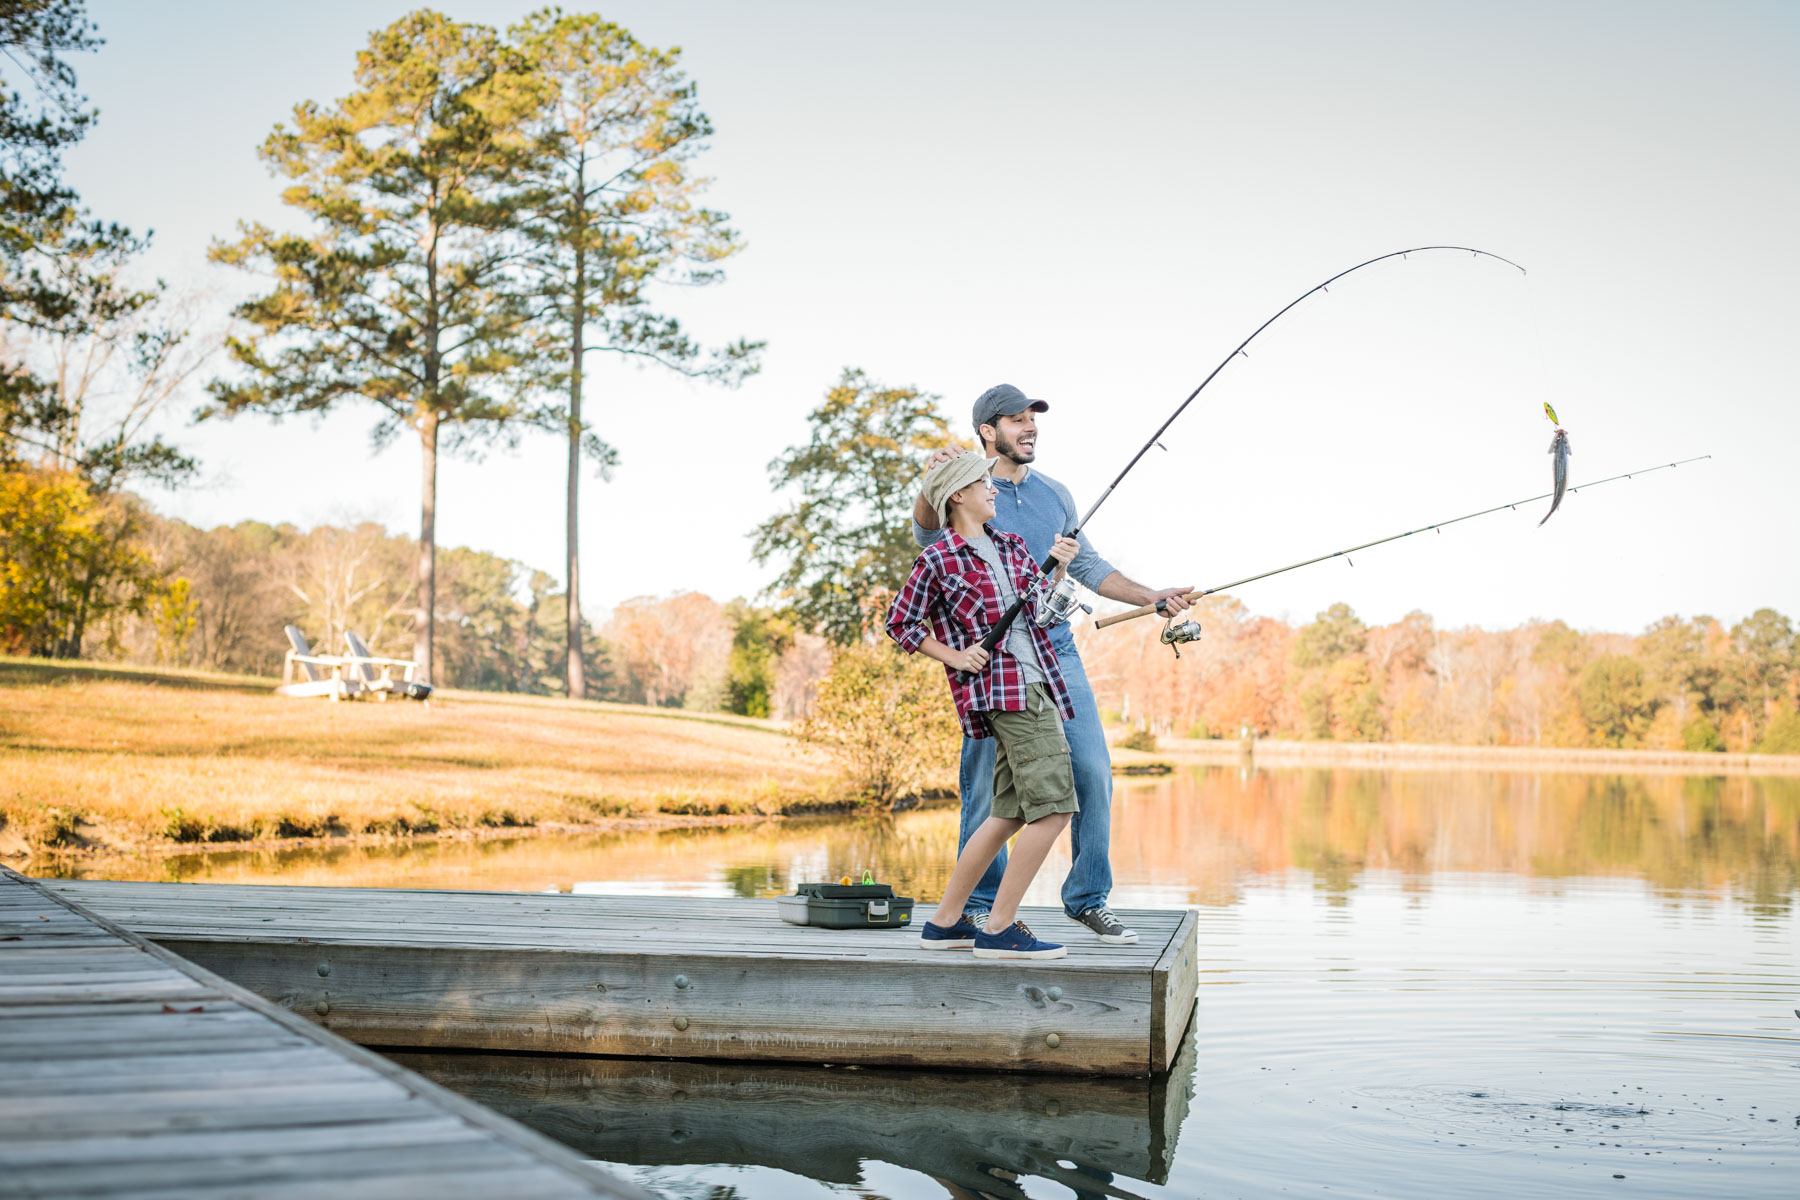 0319_Weber_02_DOCK_FISHING_1204_